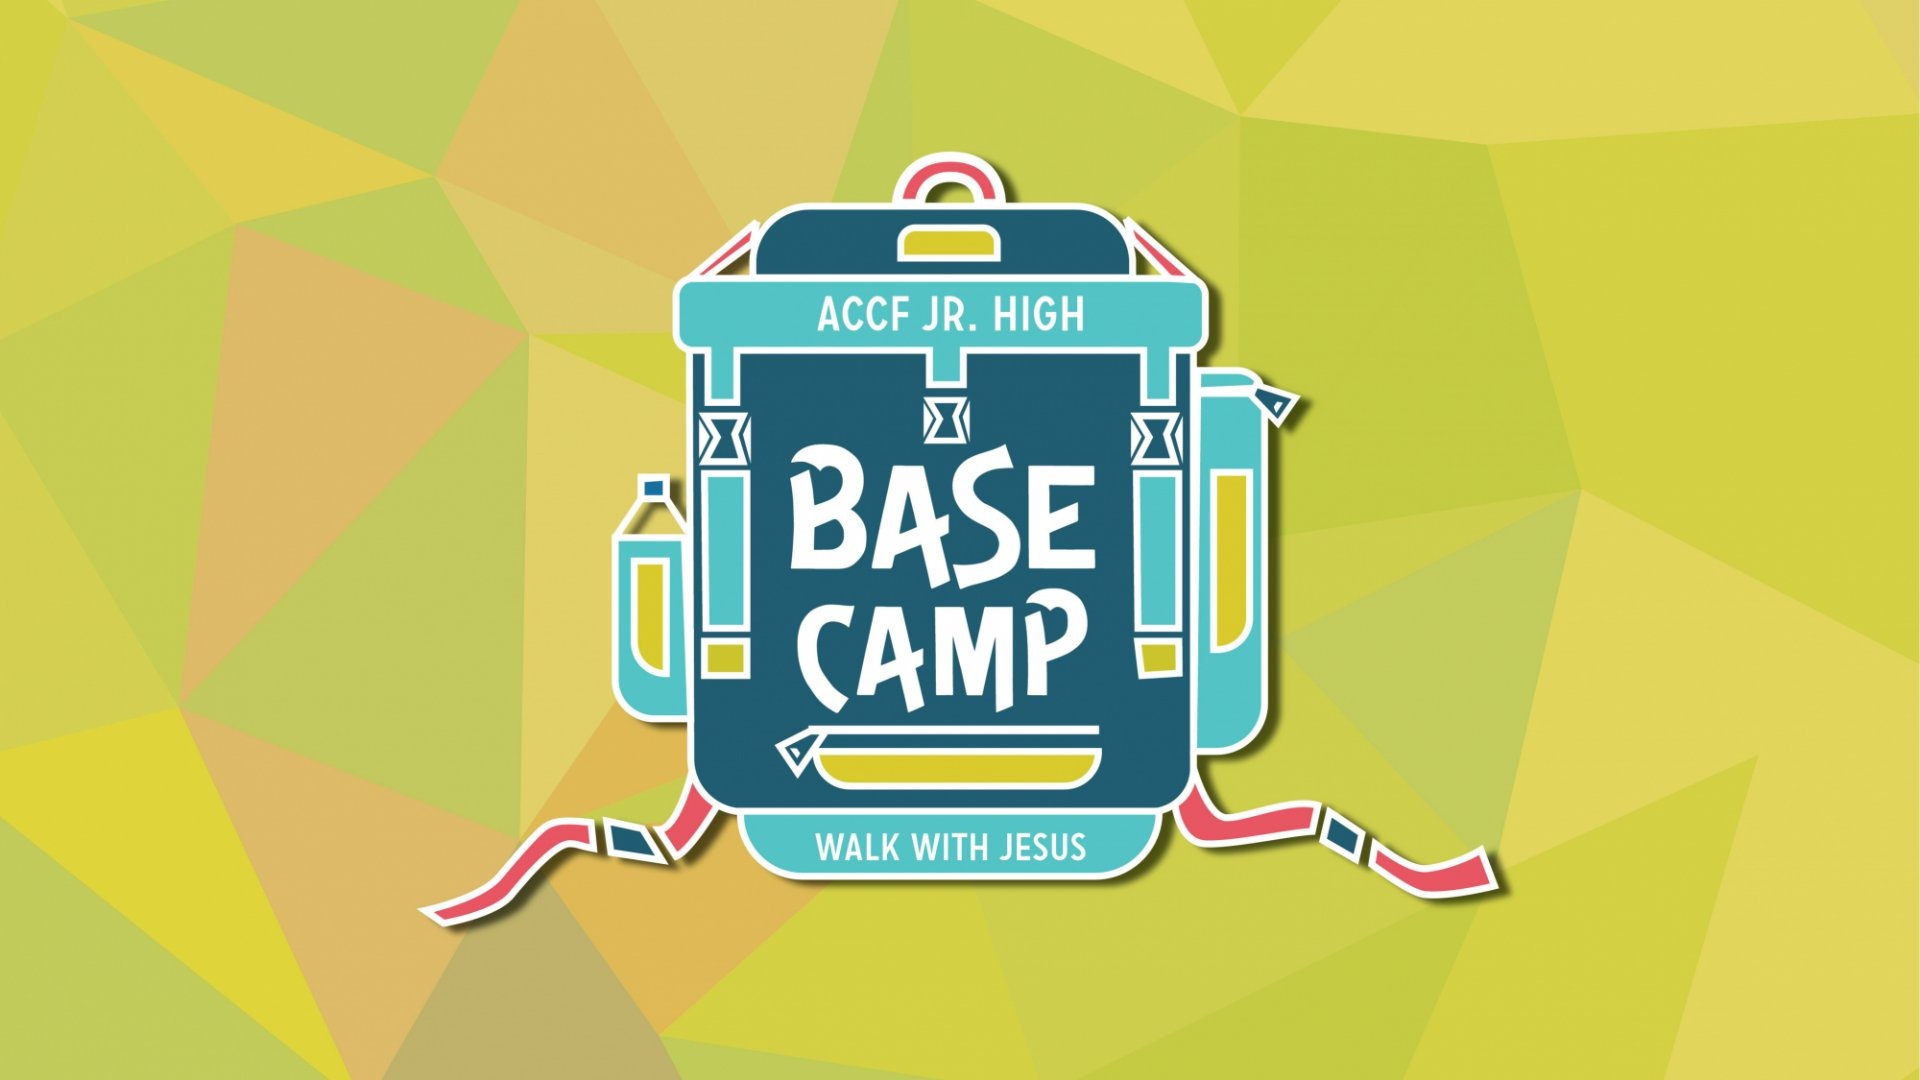 Poster for Basecamps